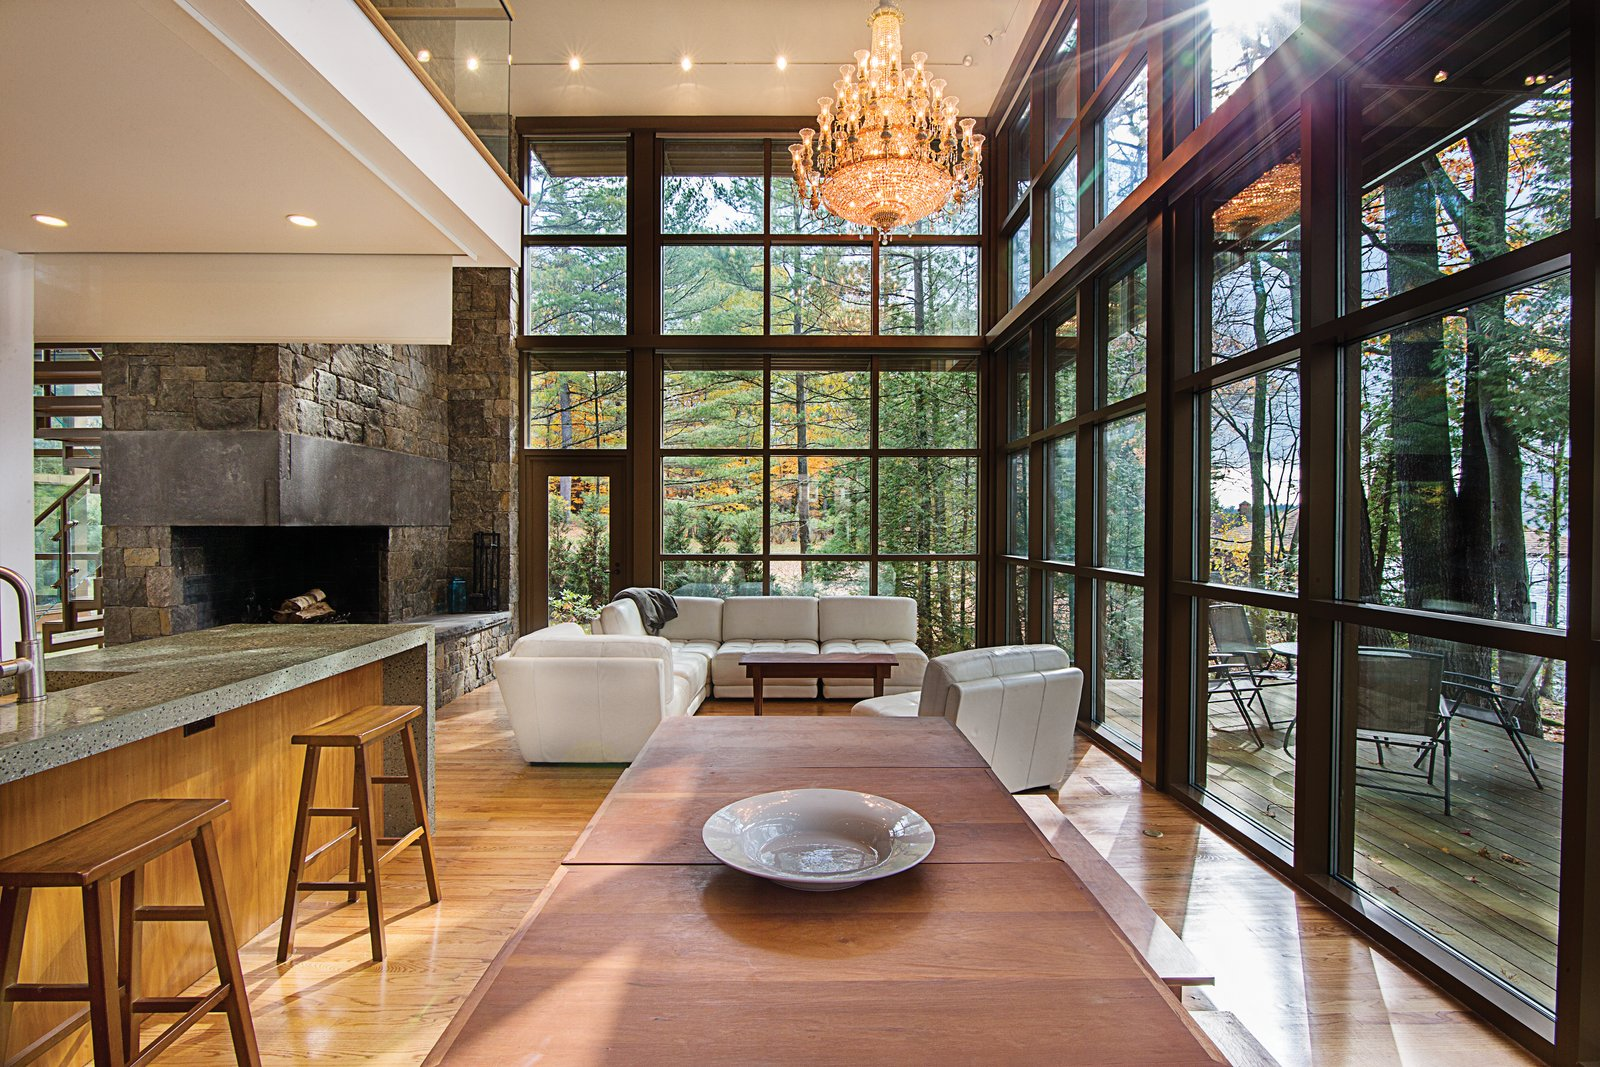 The design intent was to use natural materials with modern details, and to maximize the area of glass towards the lake.